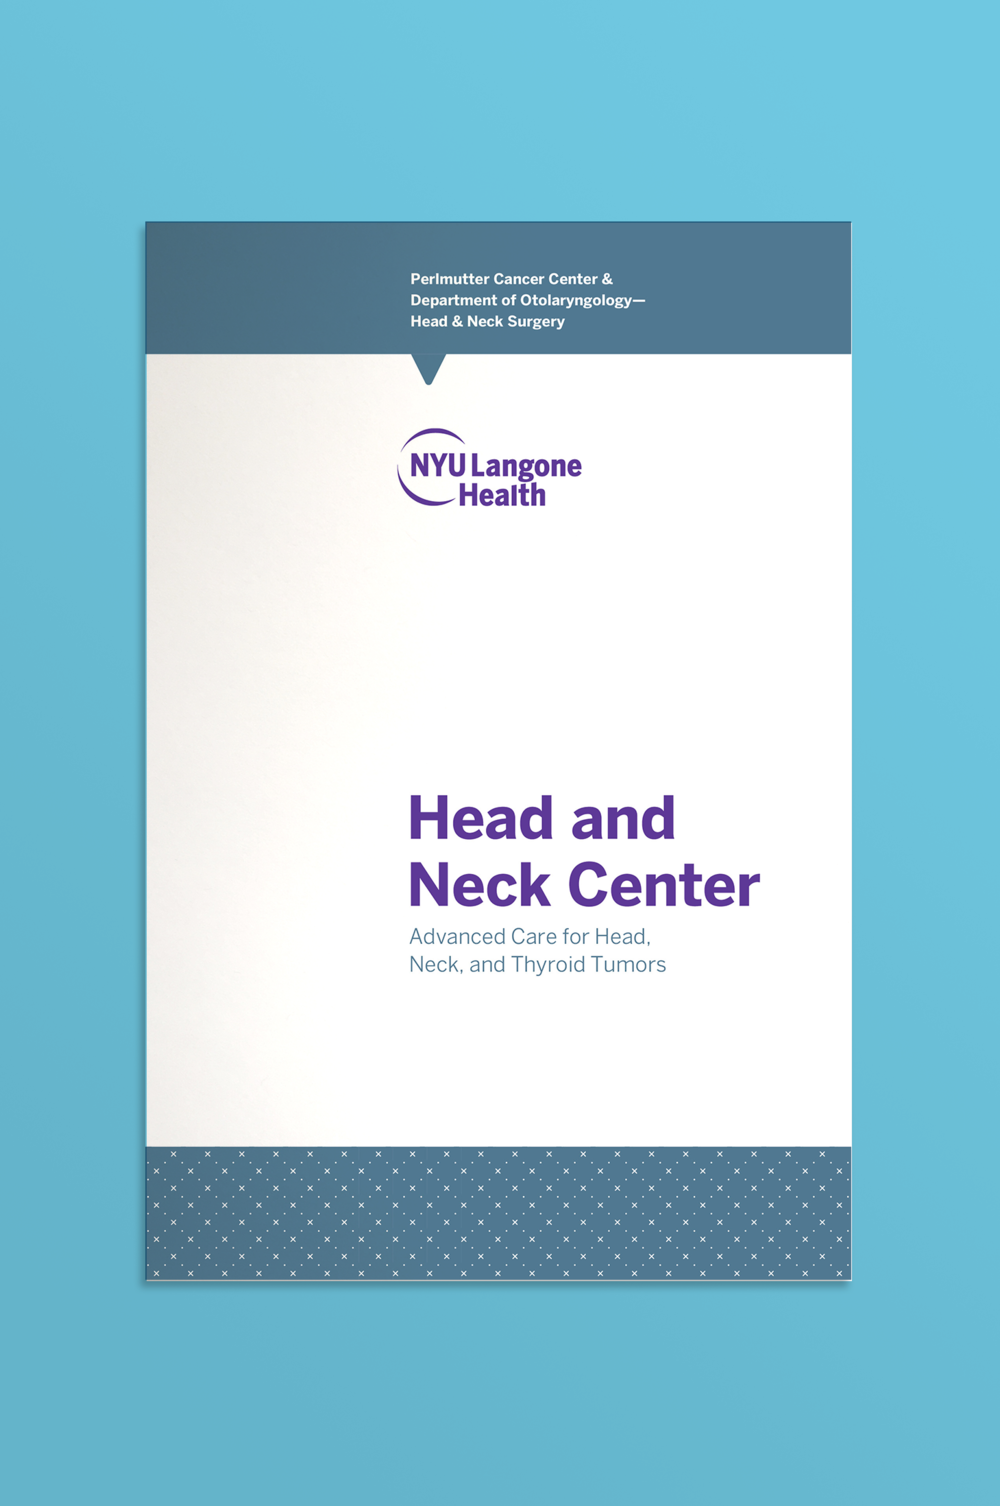 Head and Neck Brochure Cover